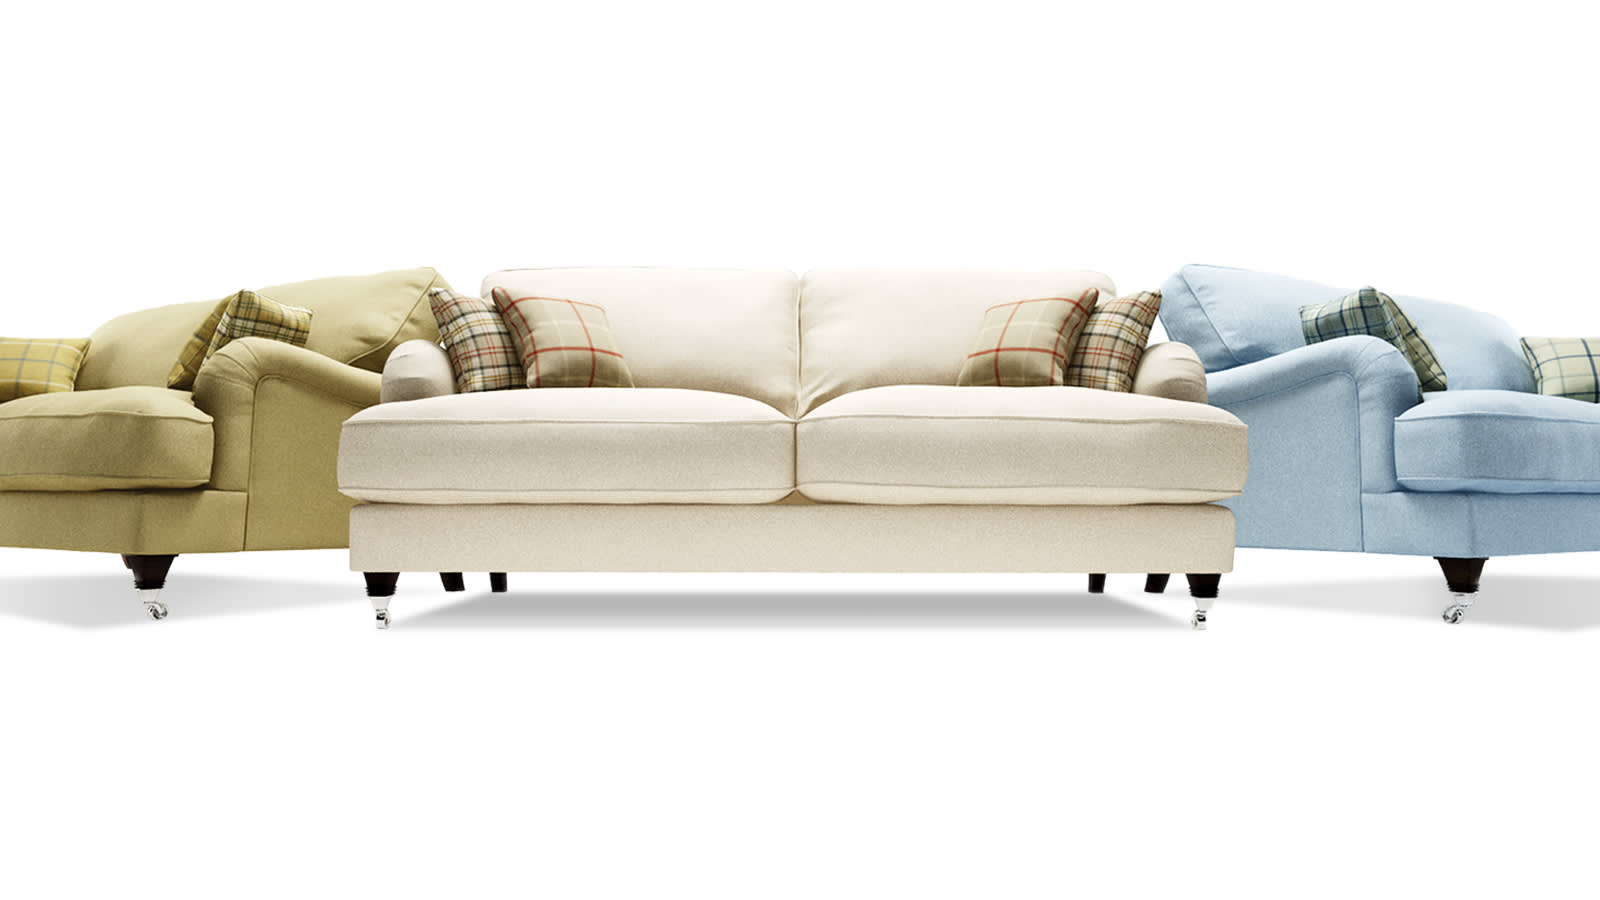 Green, white and blue fabric three seater sofas